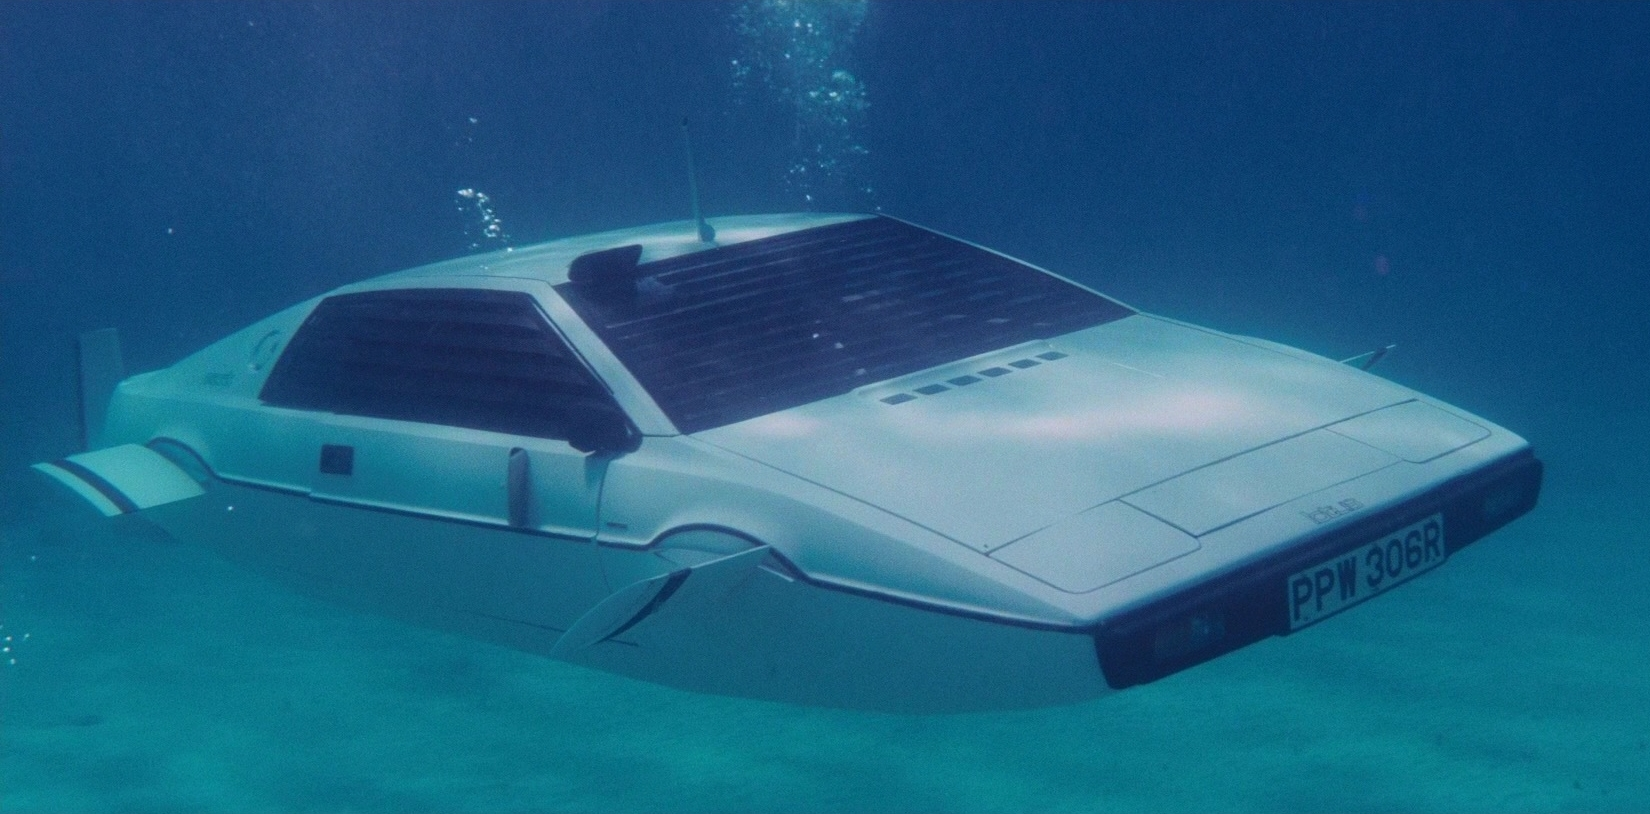 http://vignette1.wikia.nocookie.net/jamesbond/images/6/6c/Lotus_esprit_S1_submarine.jpg/revision/latest?cb=20121230165901